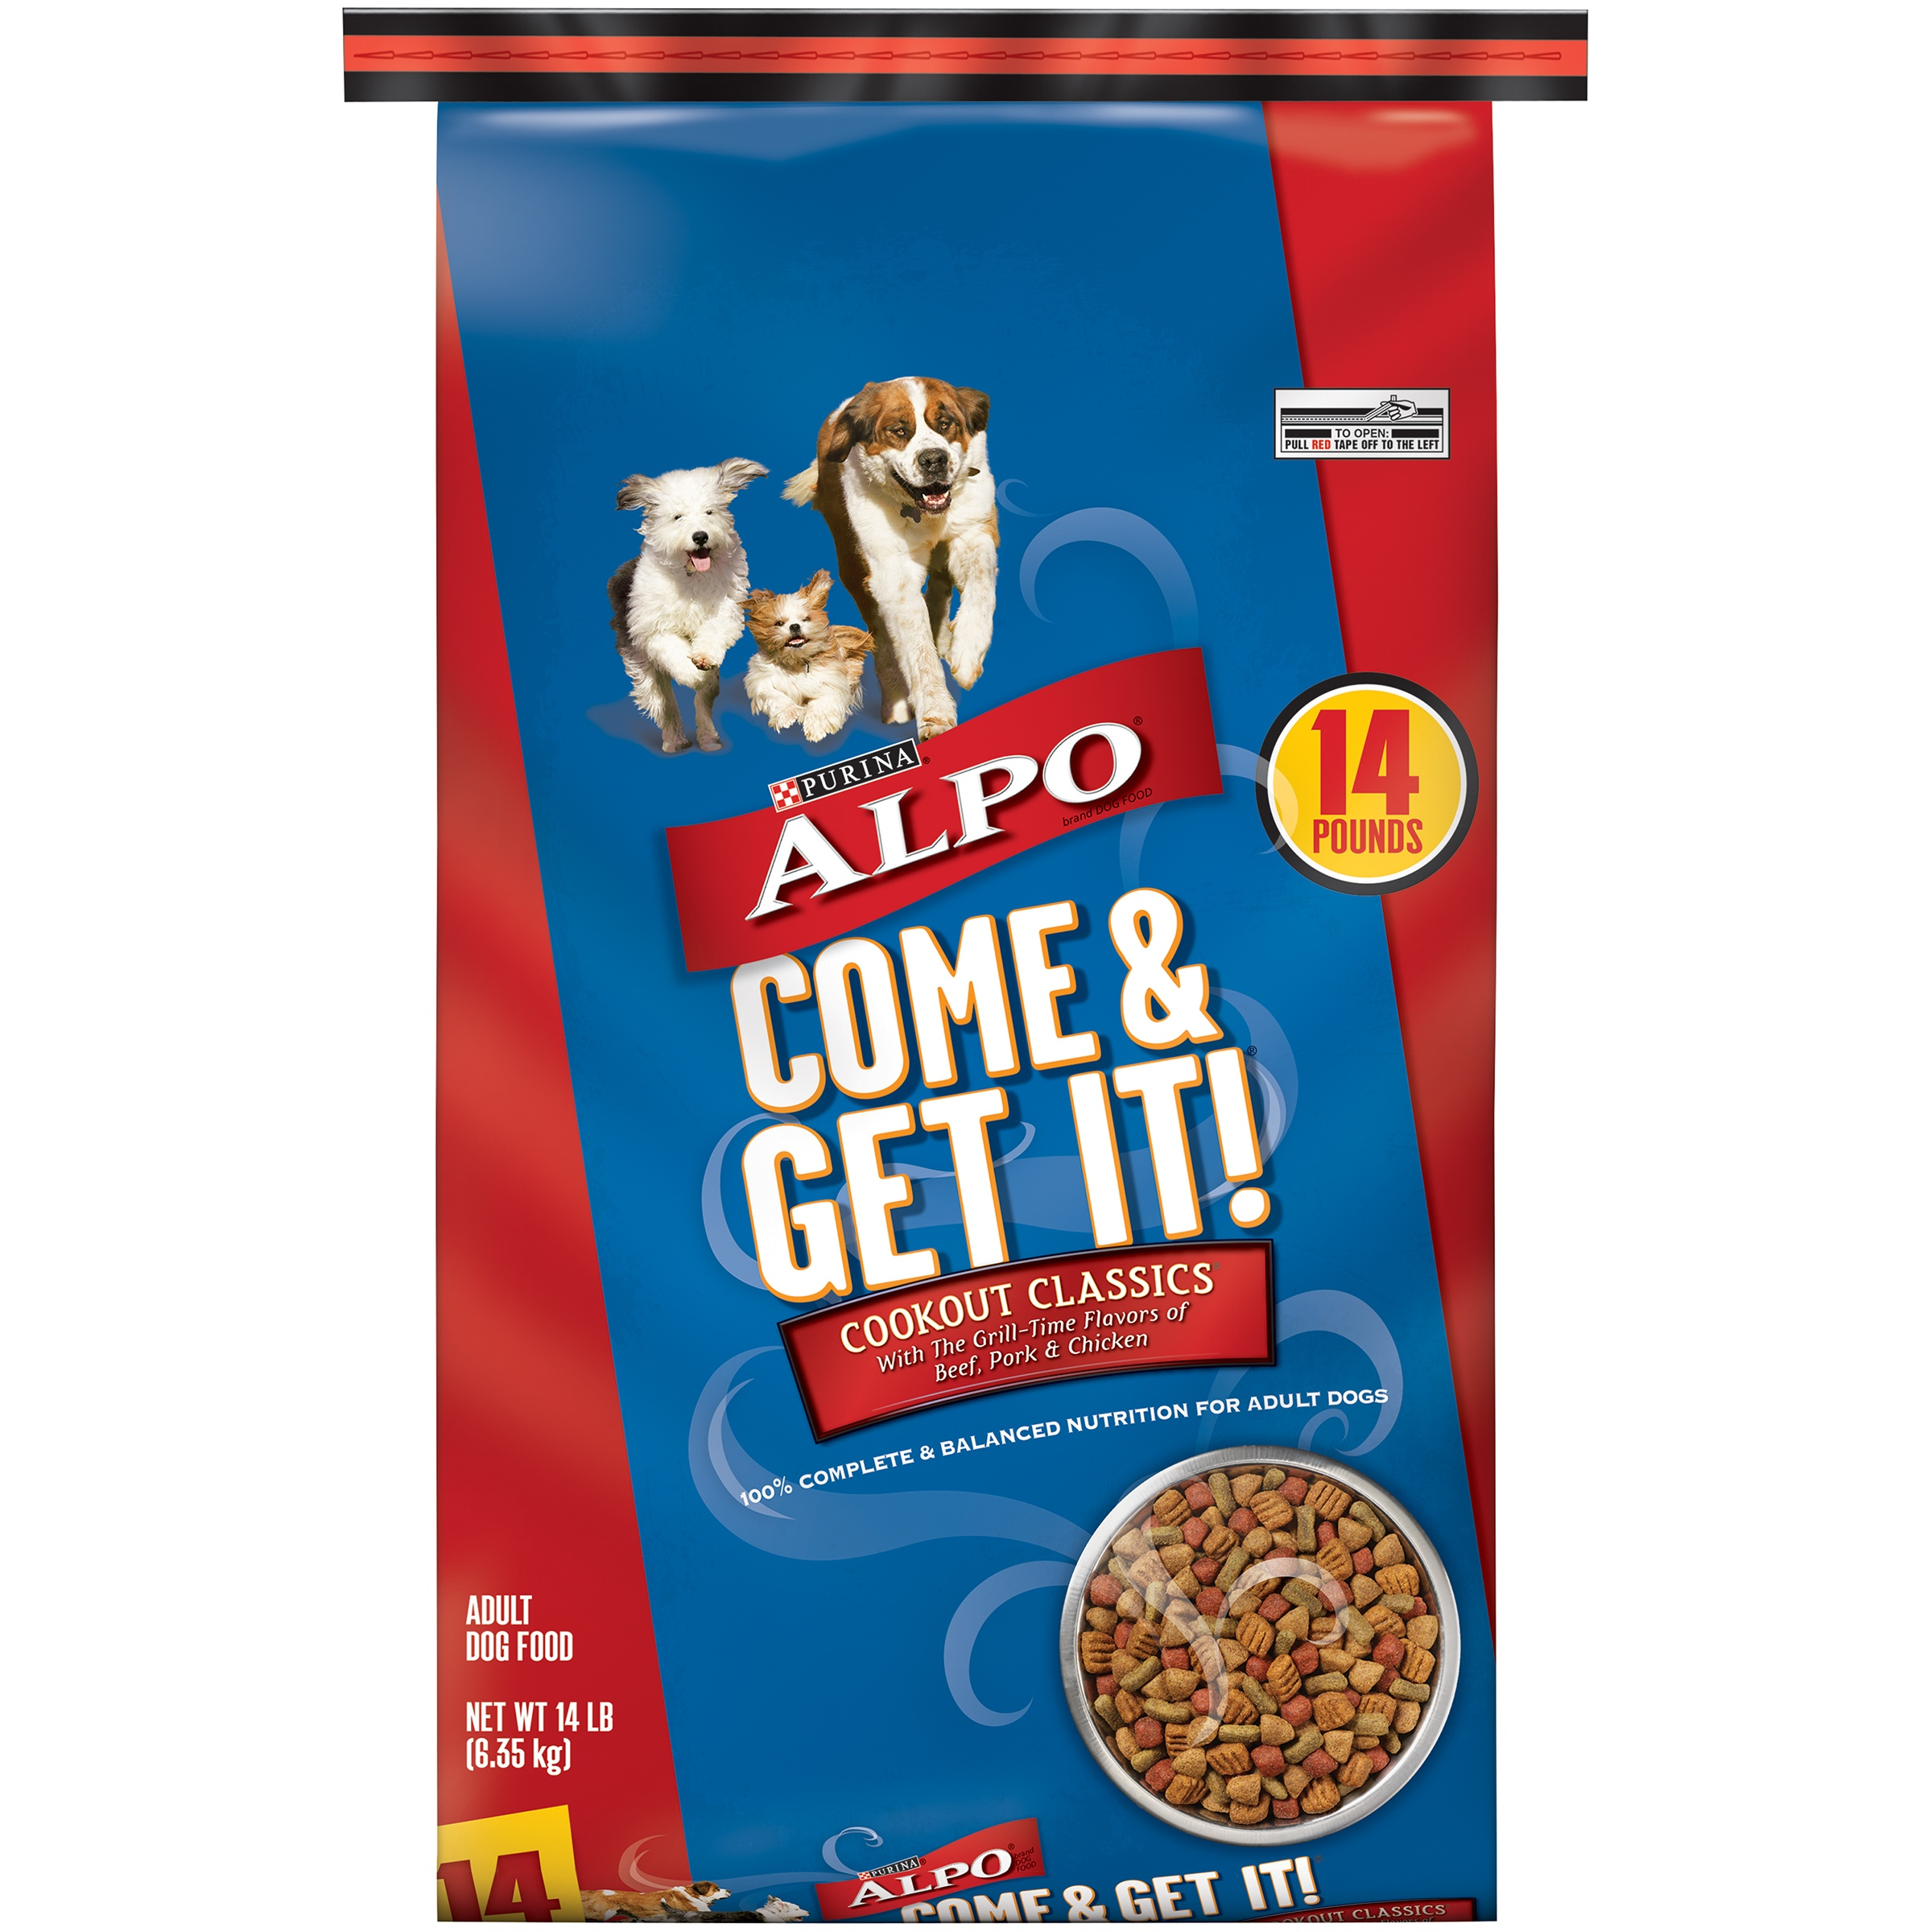 ALPO Come and Get It Come & Get It! Cookout Classics Dry Dog Food, 14 Lb.